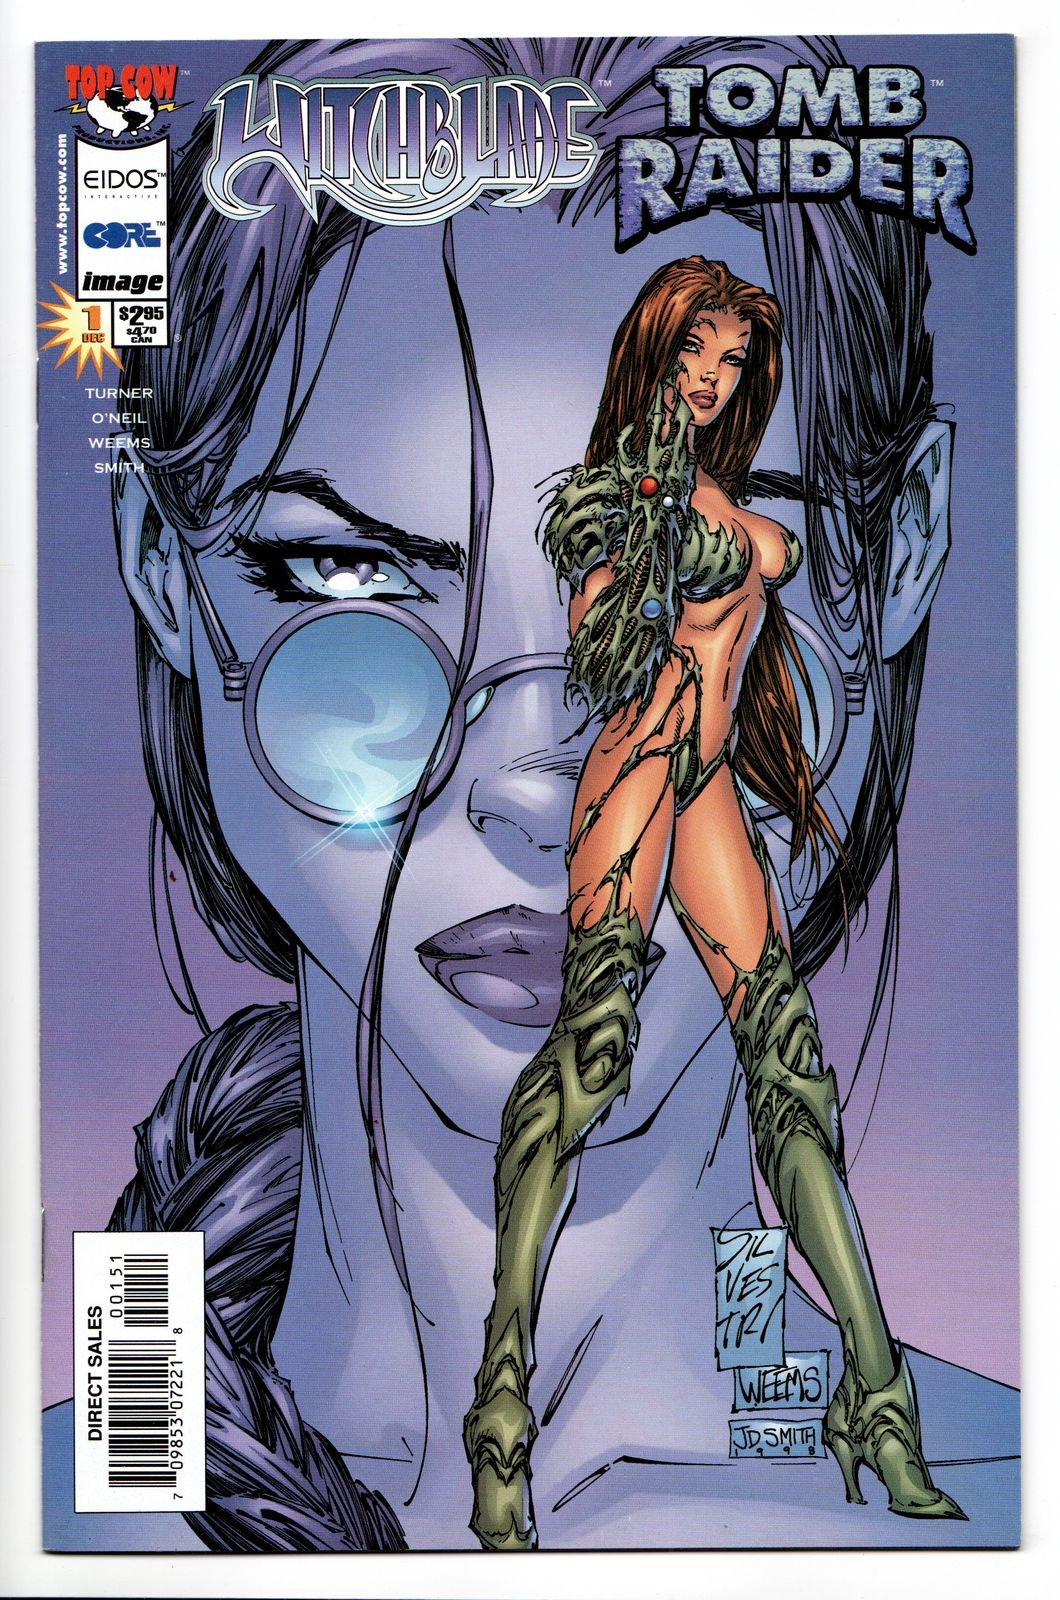 Witchblade Tomb Raider #1B VF-NM Image Comics Dec 1998